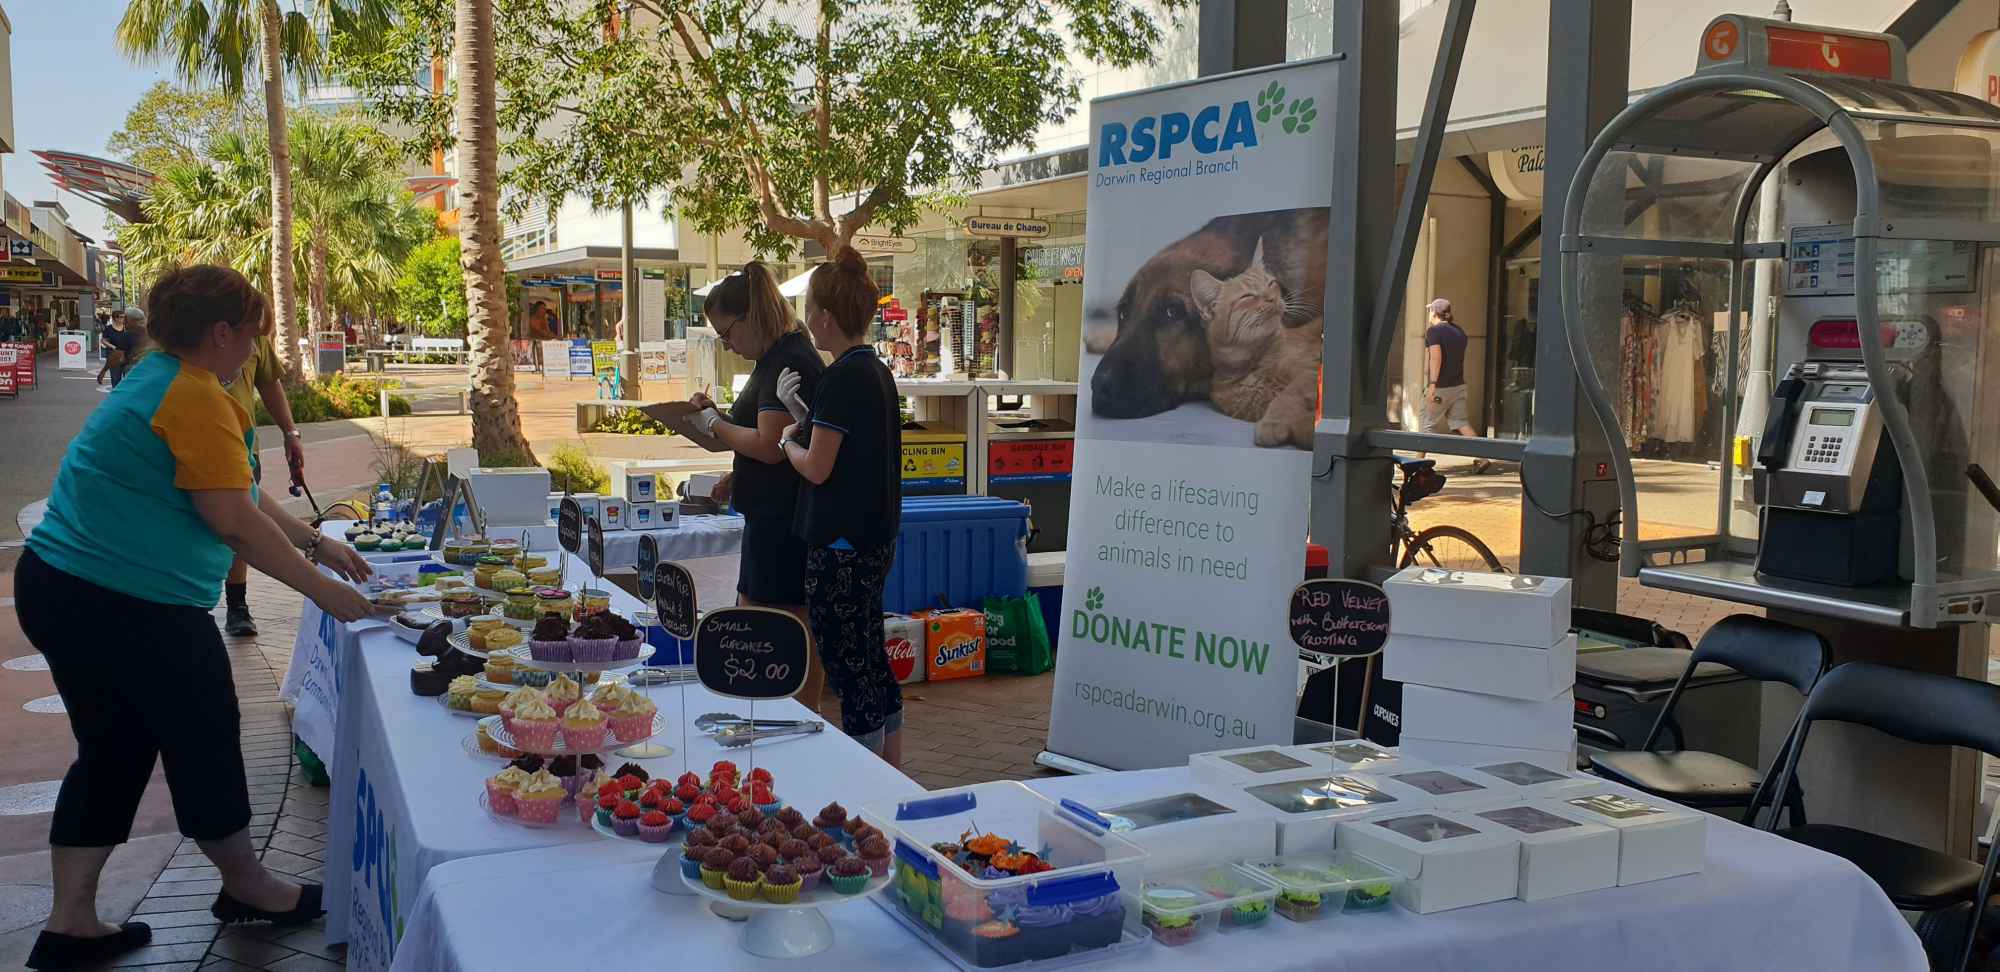 RSPCA Australia (Royal Society for the Prevention of Cruelty to Animals)